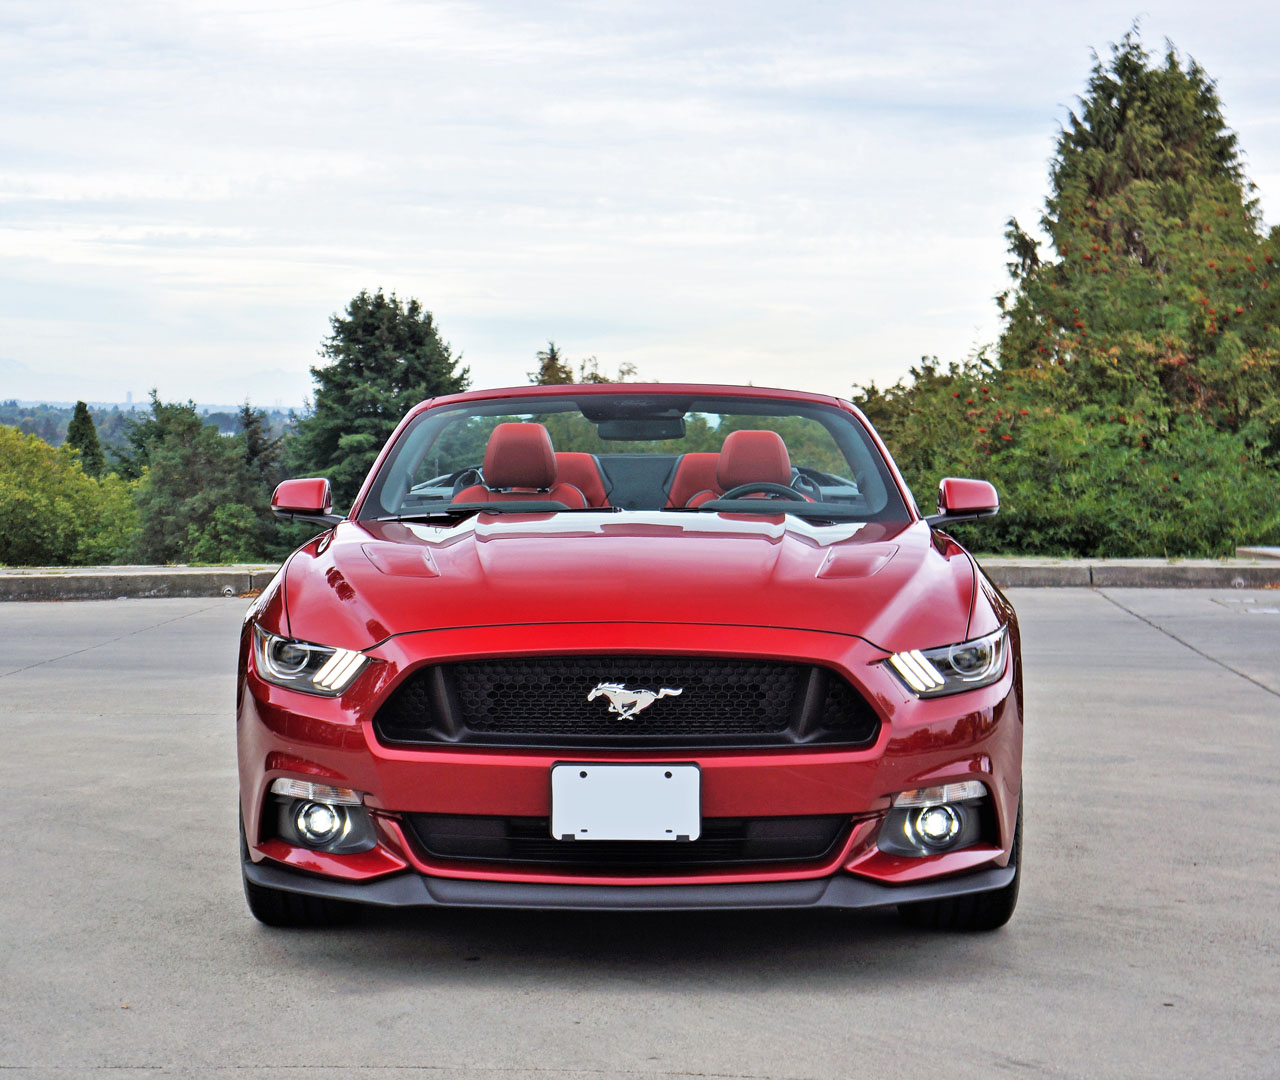 2017 Ford Mustang Gt Convertible Road Test Carcostcanada